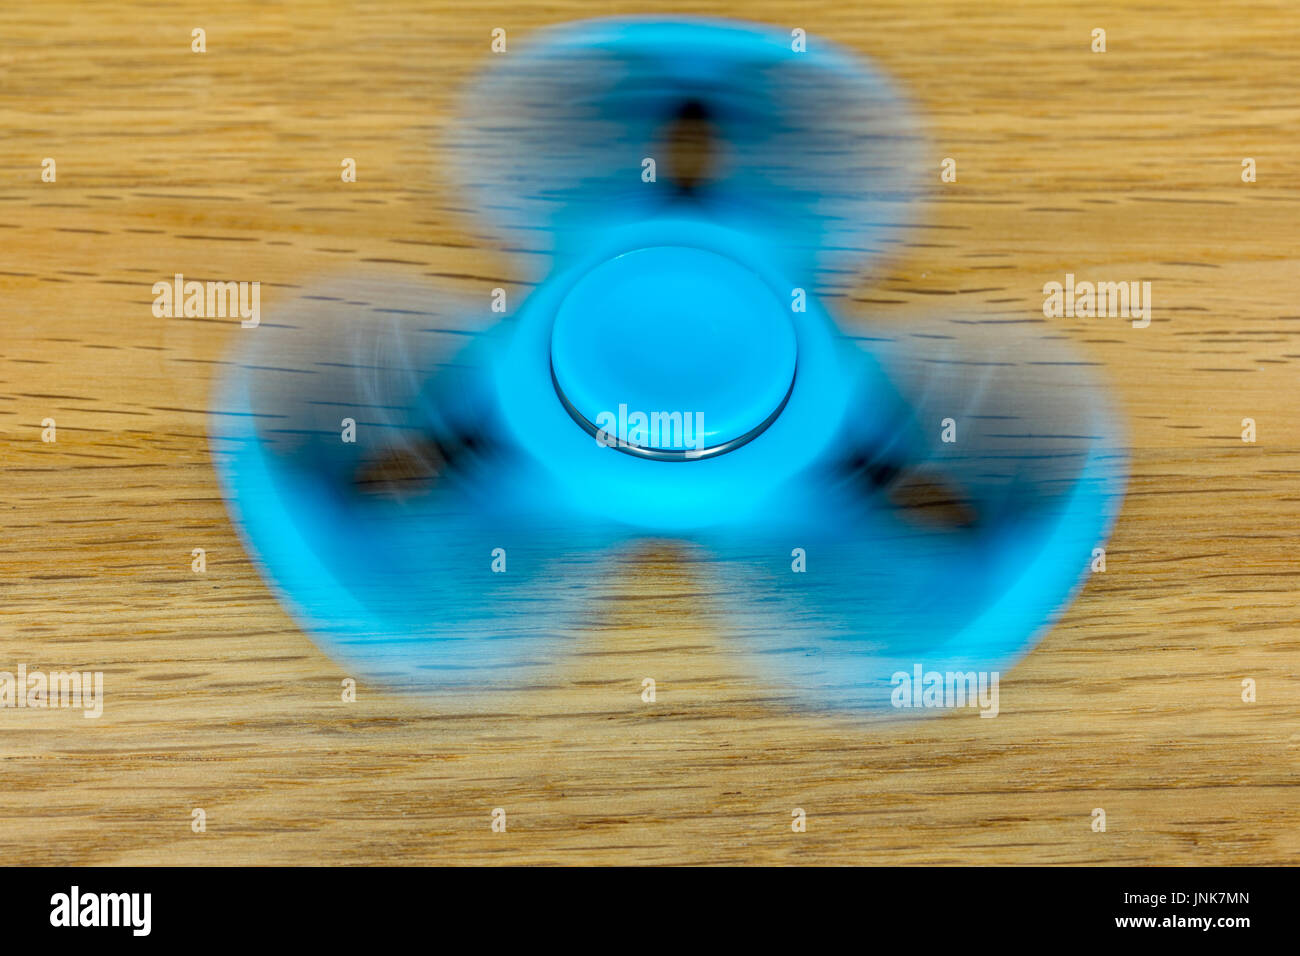 A modern blue (turquoise) fidget spinner rotates quickly and lies on wood - Stock Image